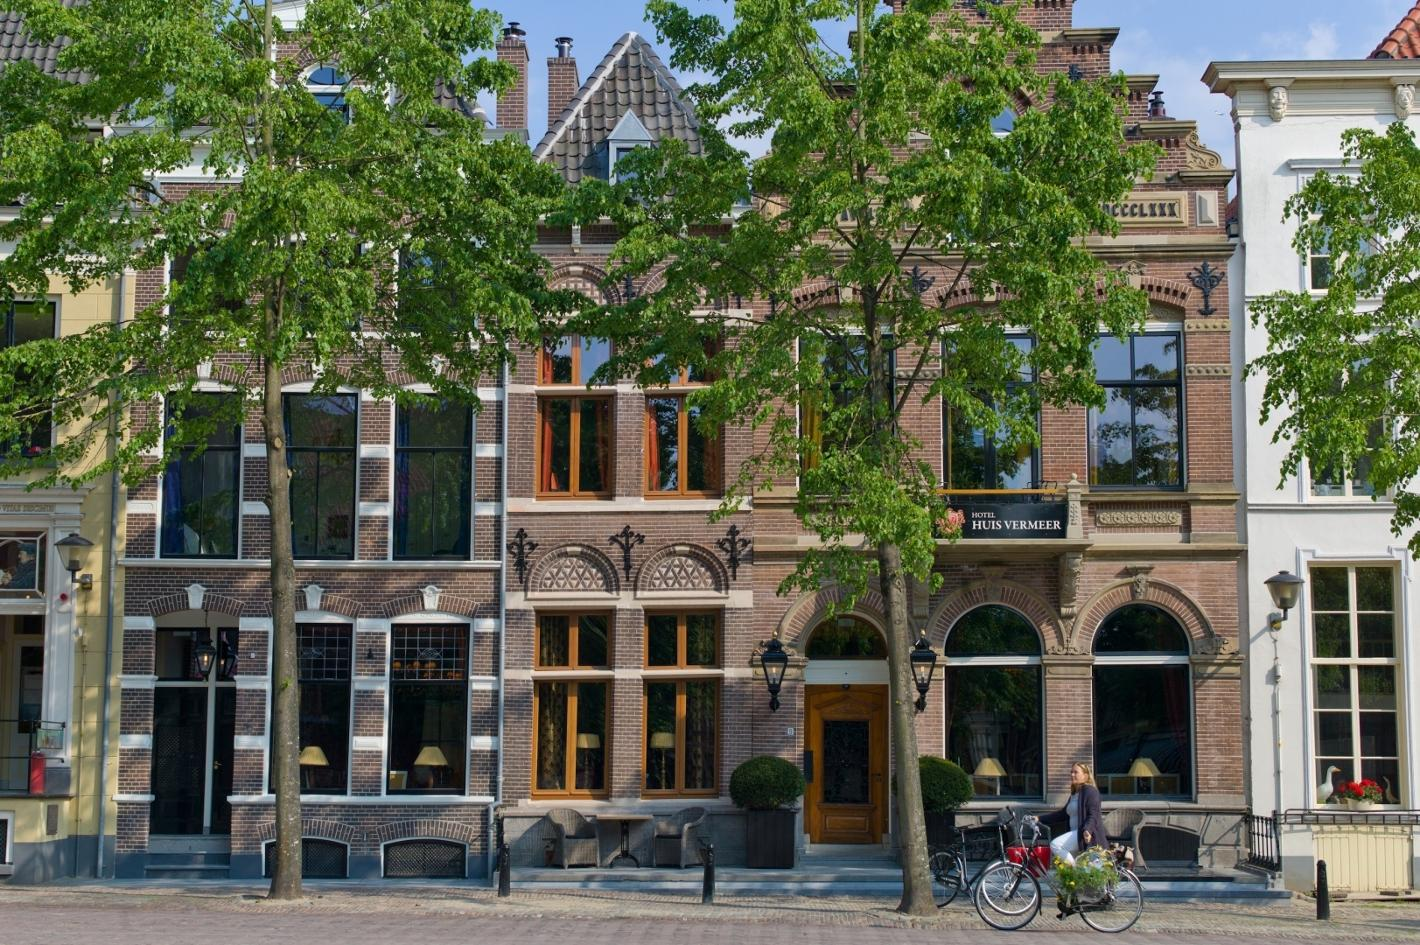 Foto Grand Boutique Hotel Huis Vermeer in Deventer, Schlafen, Schlafen - #1